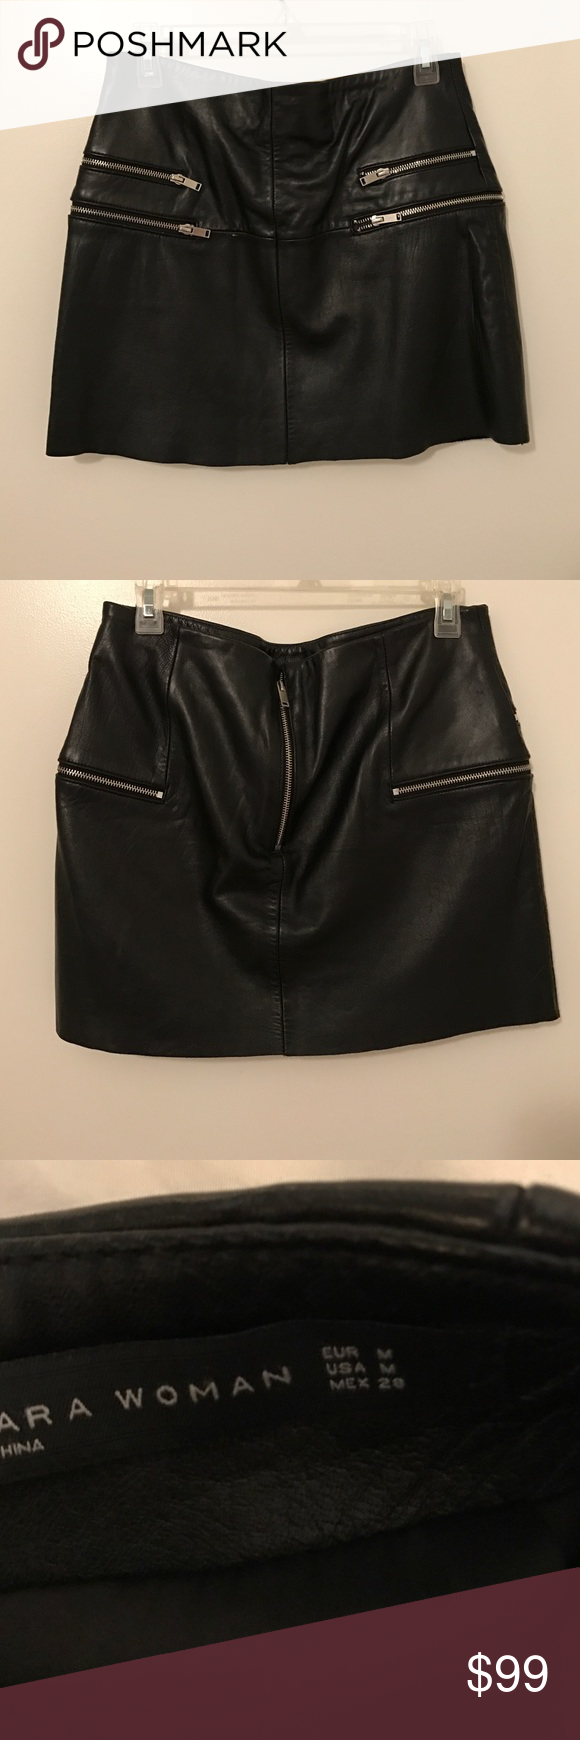 Zara Woman Leather Skirt Size: medium; gently worn but with lots of life left; leather is in great condition with a minor scuffing in the front of the skirt as shown in pic; 100% real leather, suede leather inner lining. Zara Skirts Mini